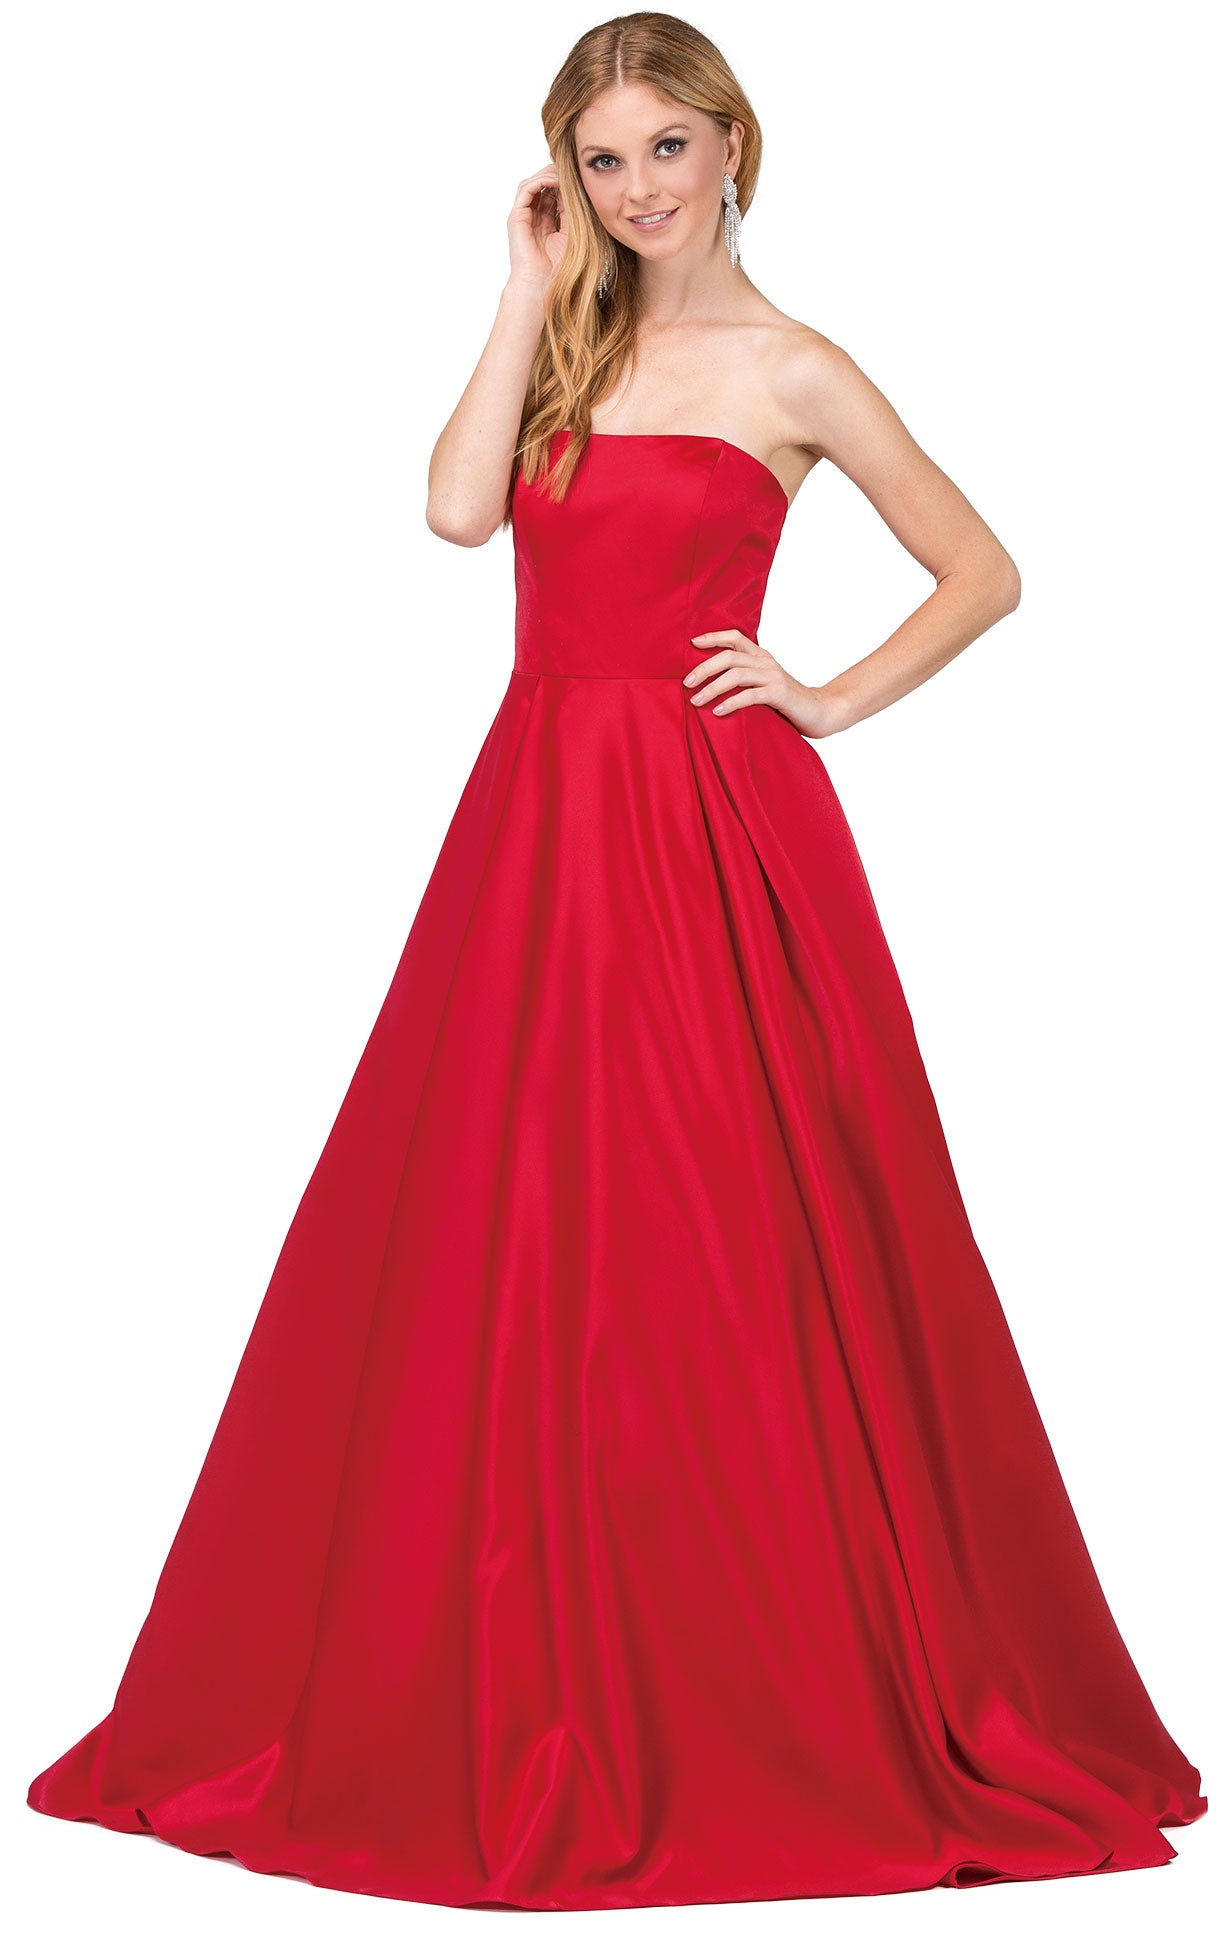 Image of Strapless Puffy Skirt Long Prom Dress With Lace-up Corset in Red